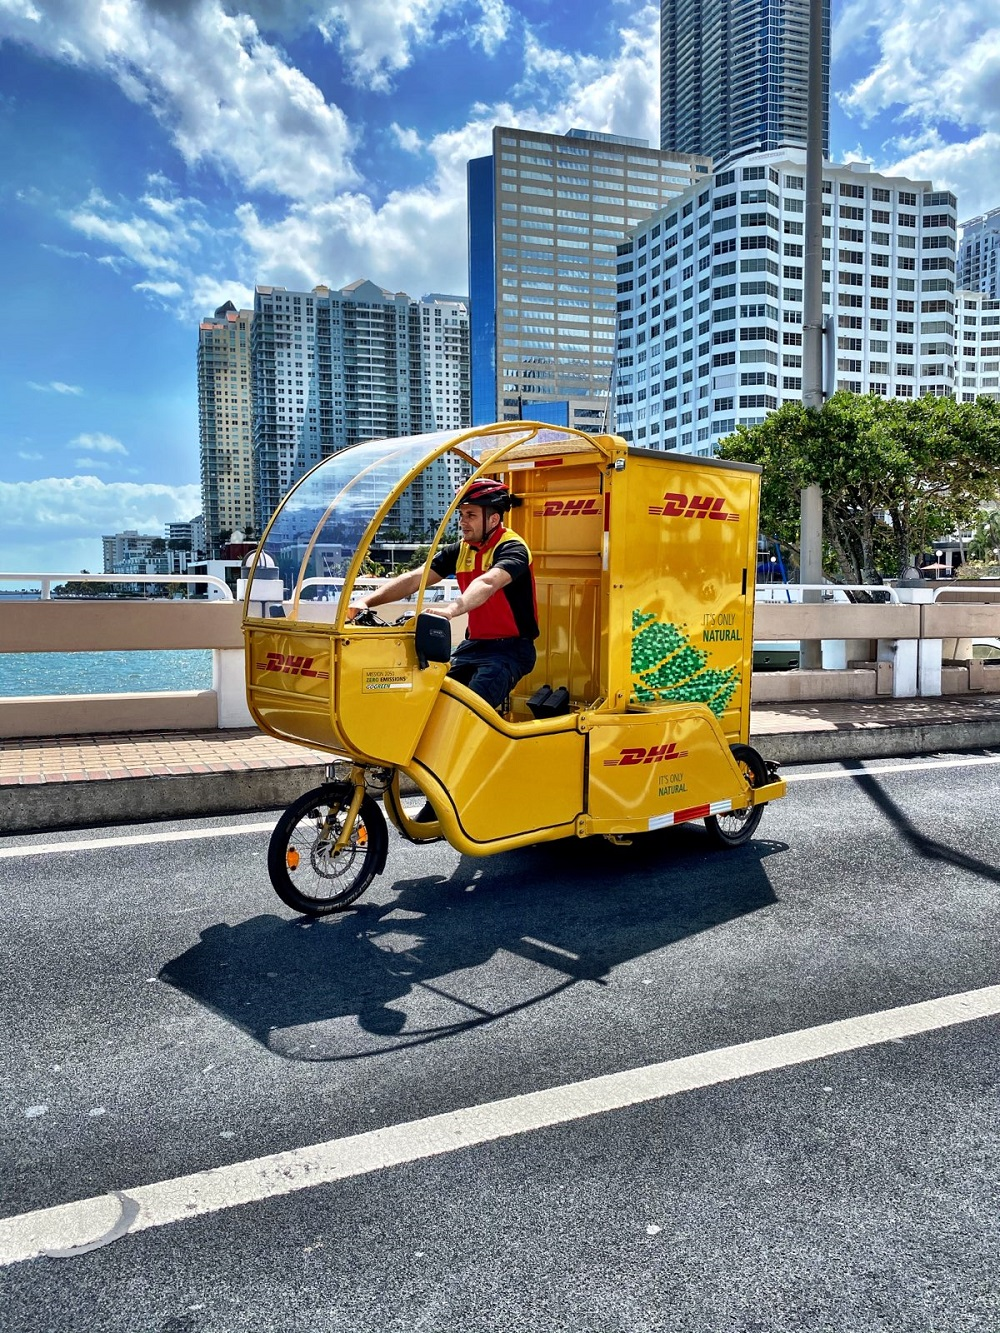 Driven by the need for increased delivery options and capacity, DHL Express and UPS are taking steps to accommodate growing demand.